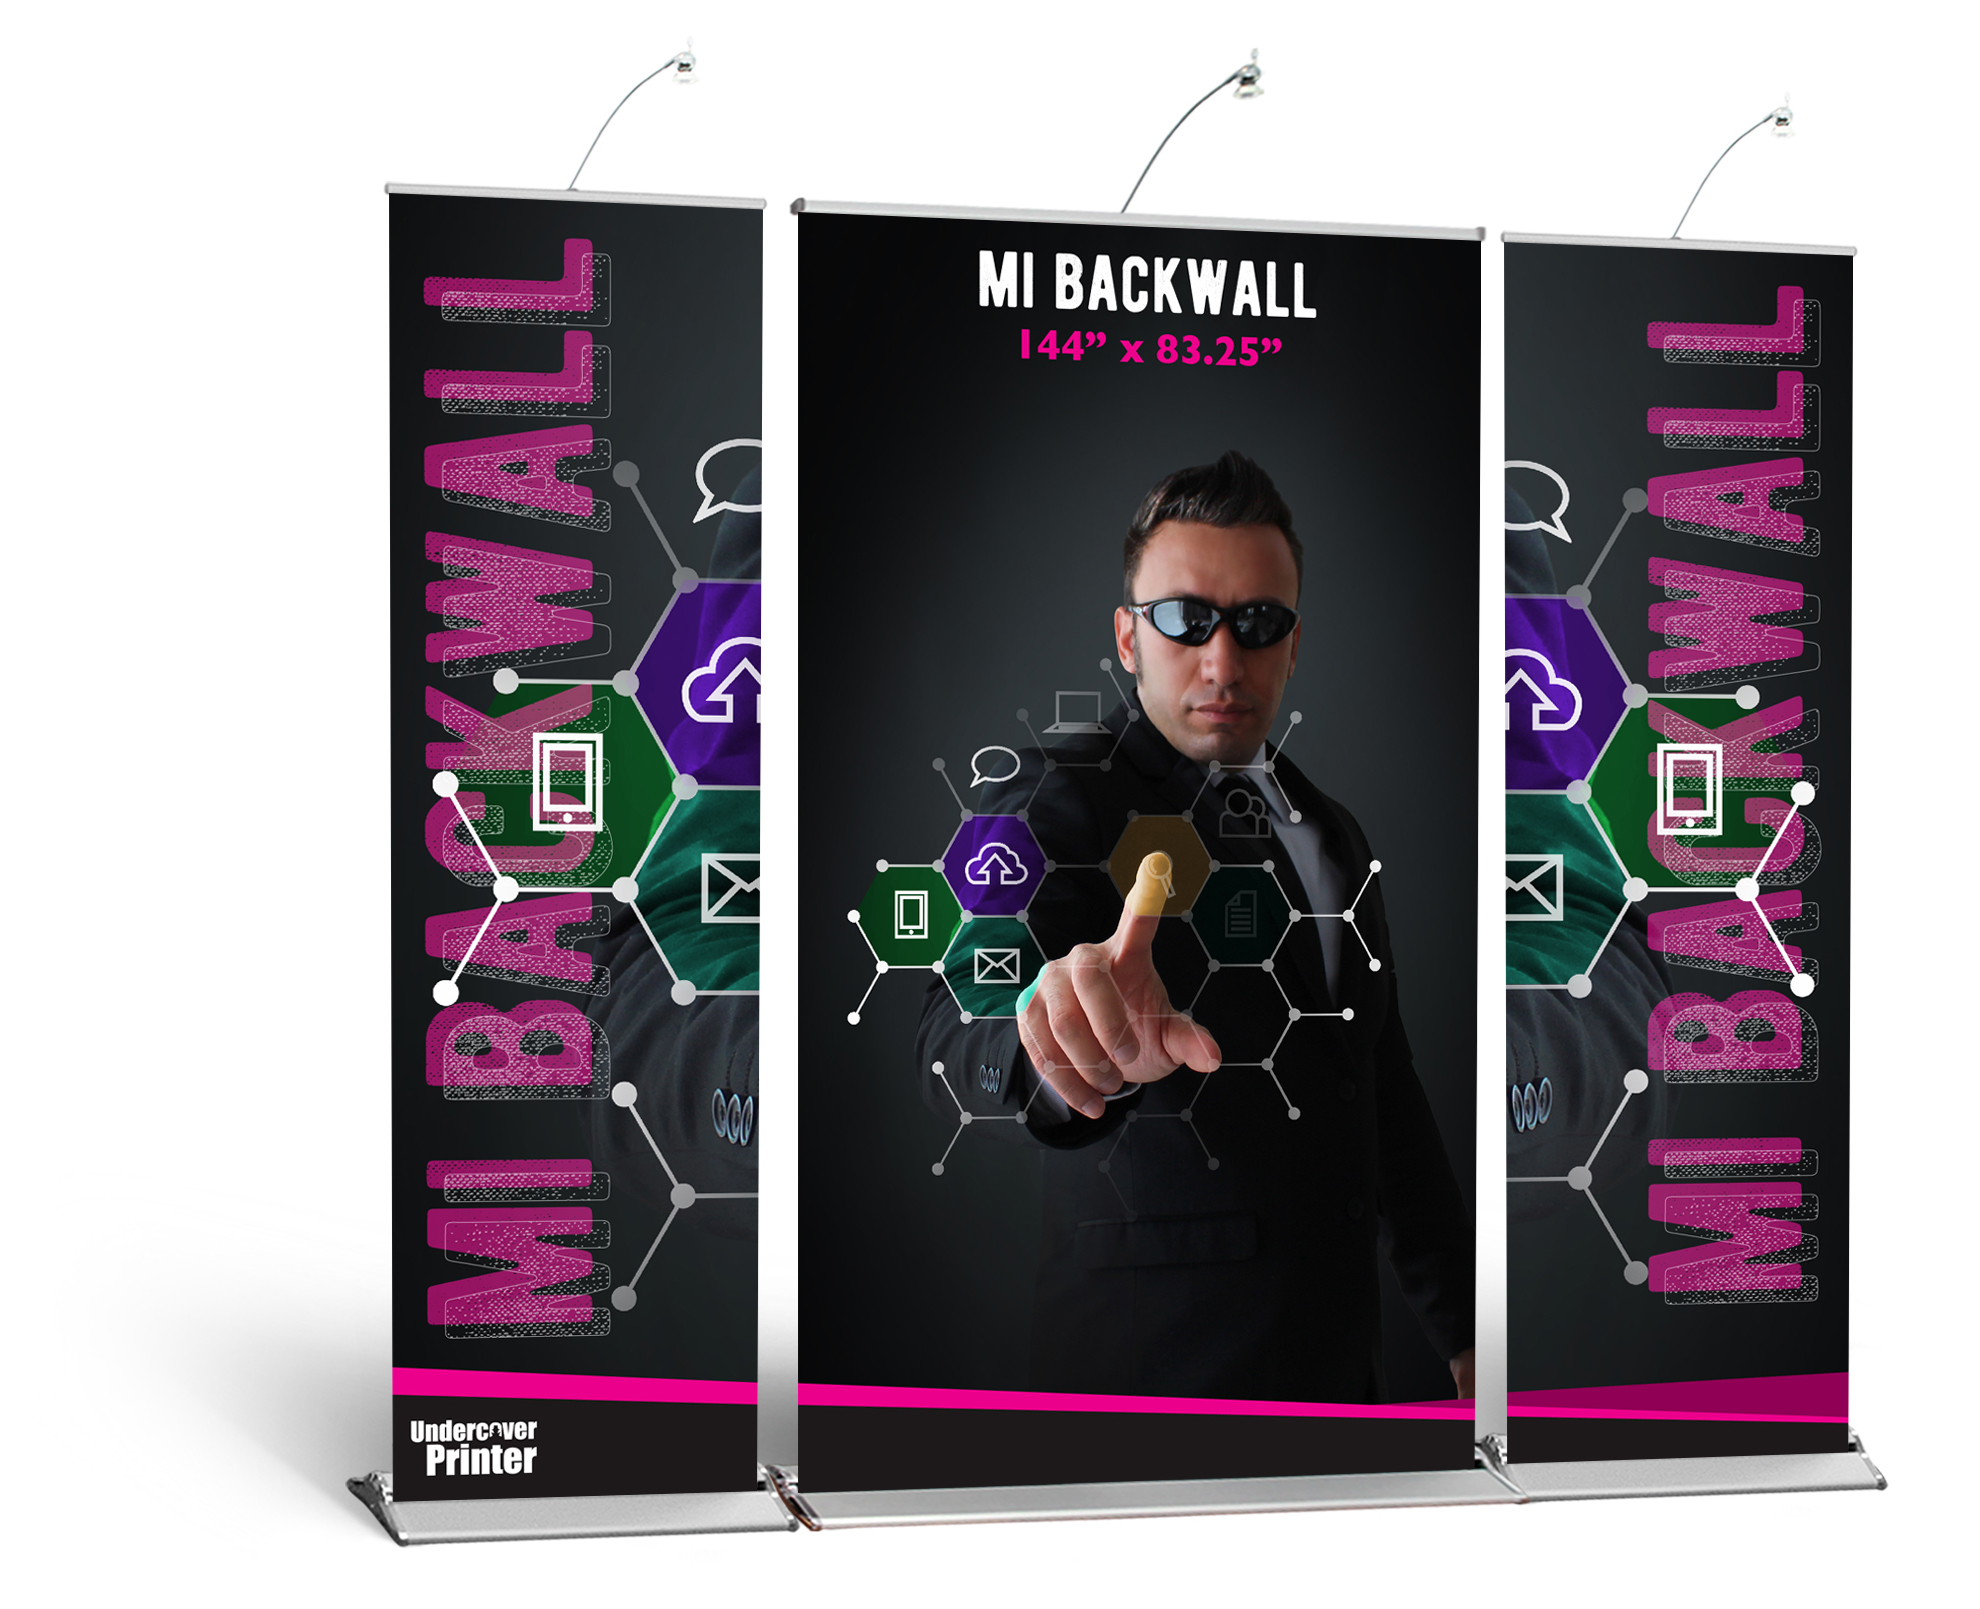 MI-Rollup-Banner-Backwall-242b-dc-va-md